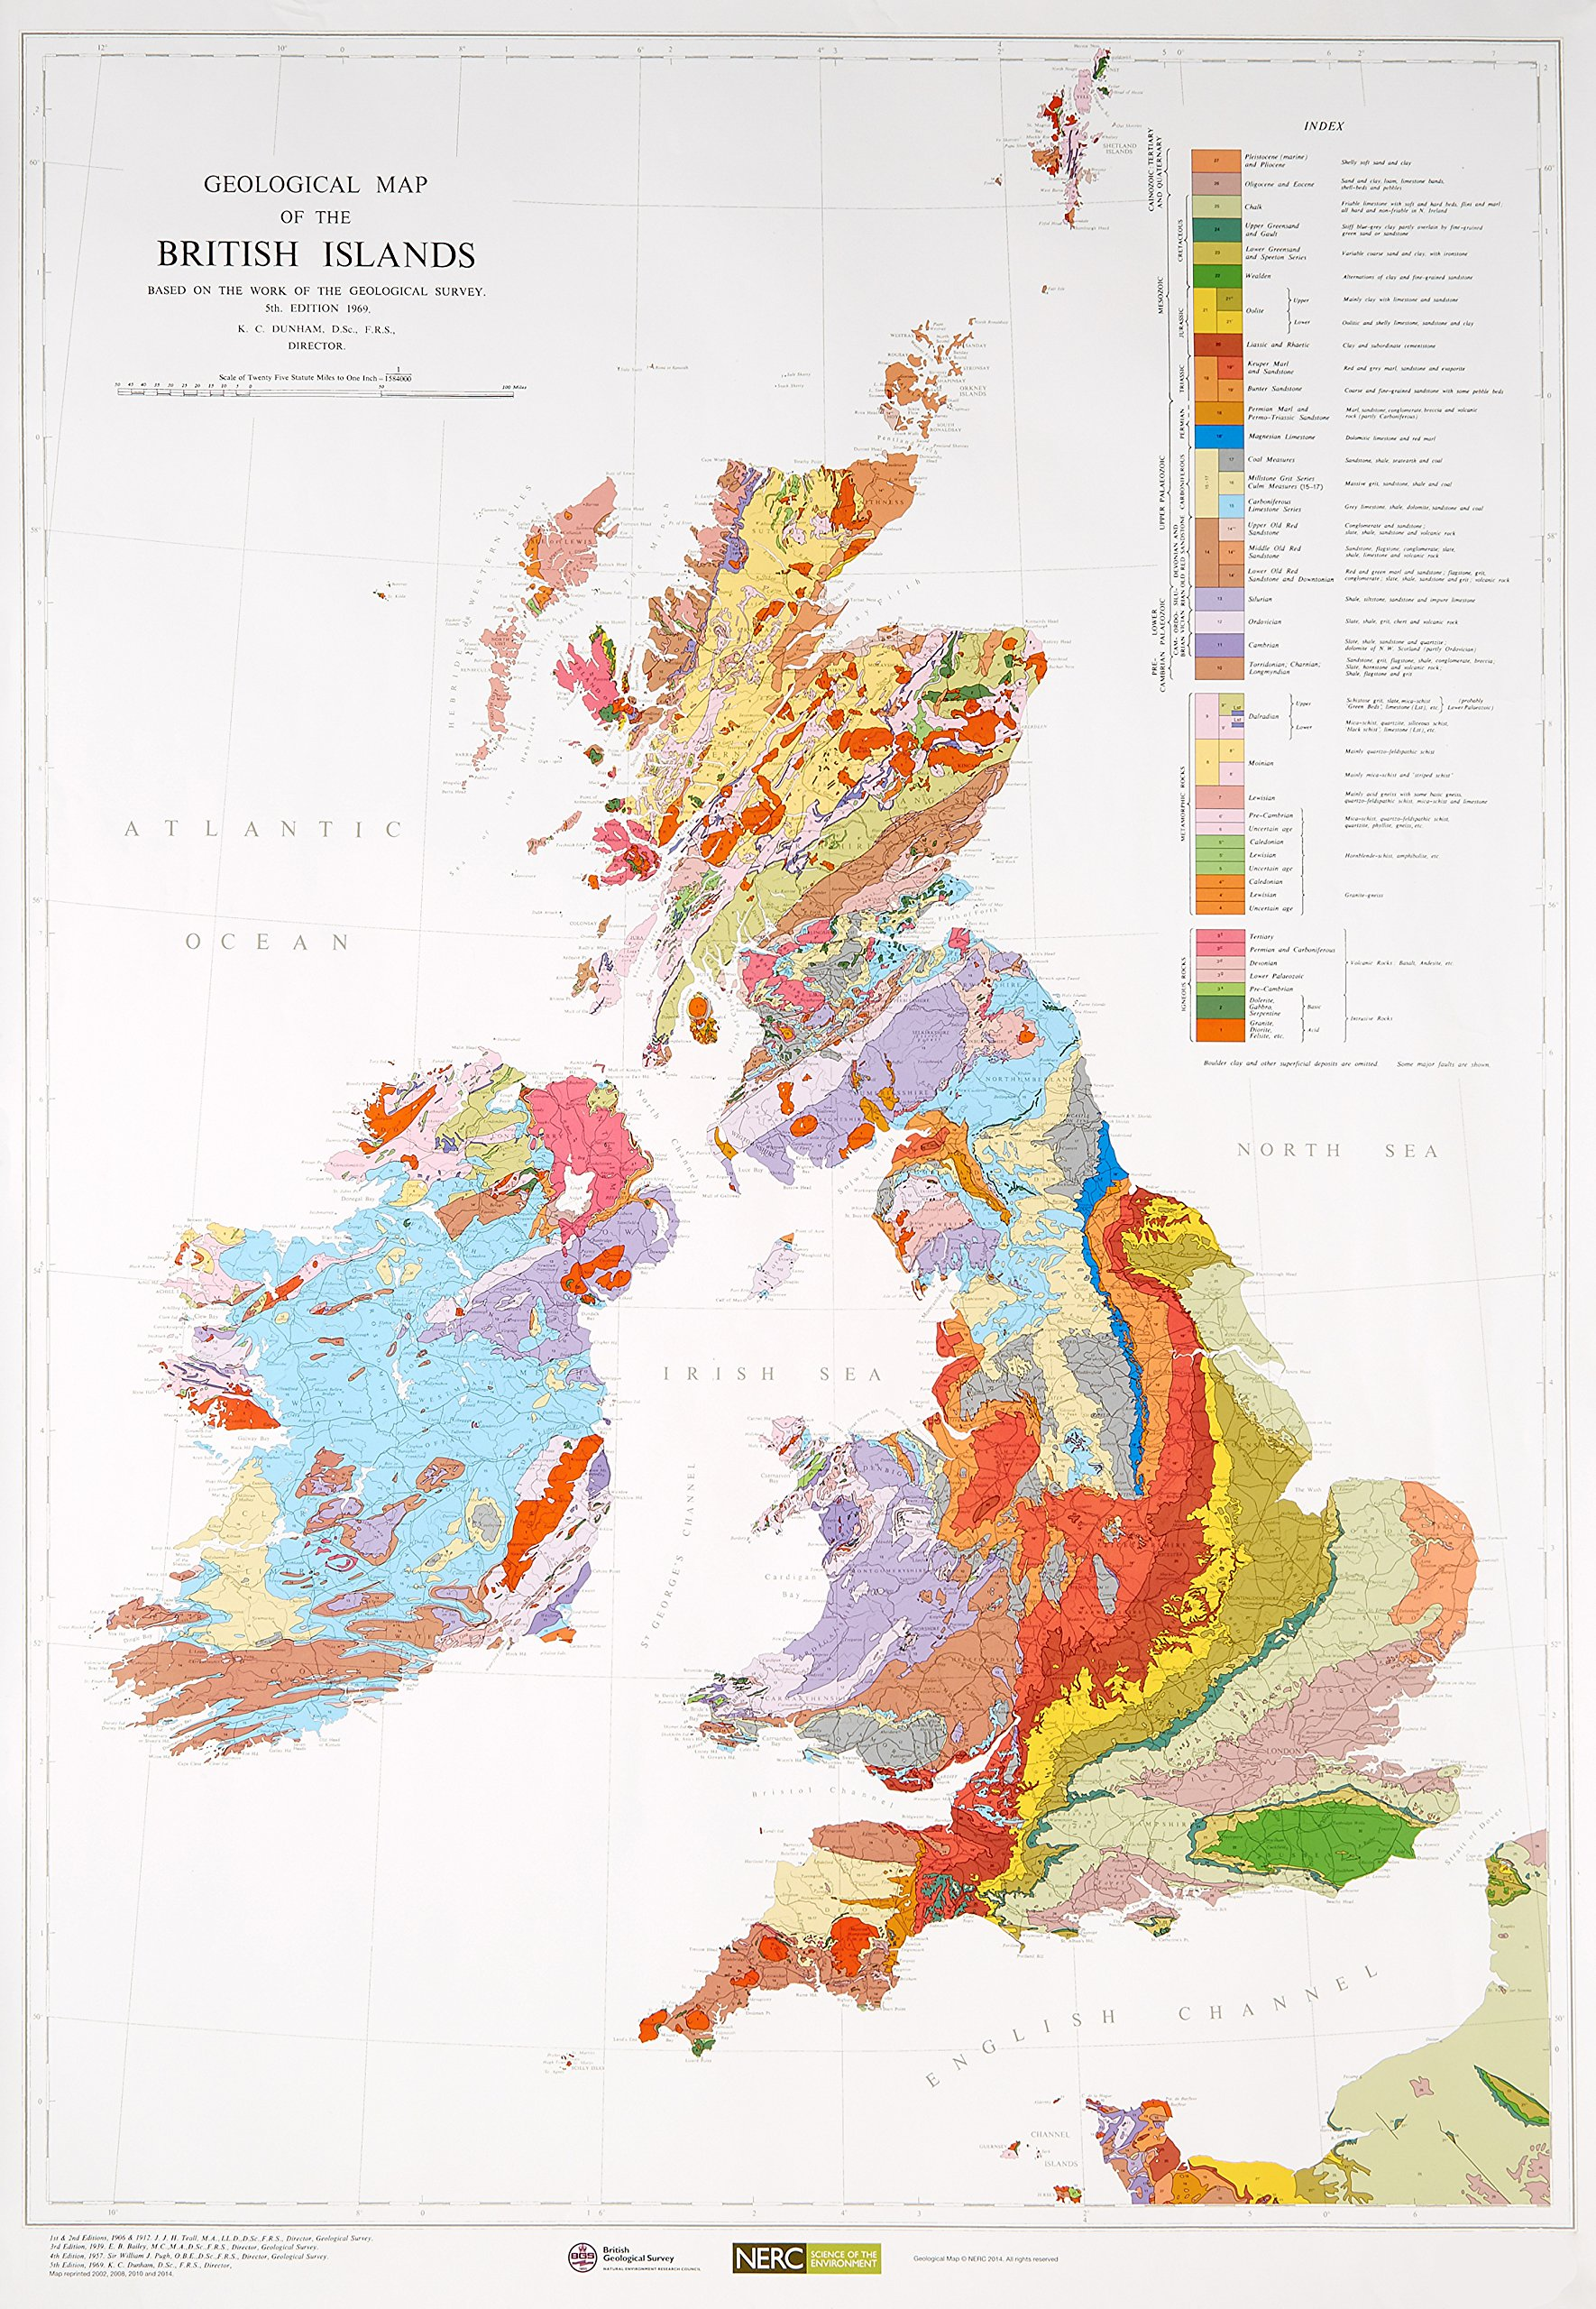 Map Of Ireland With Islands.Geological Map Of The British Islands Small Scale Geology Maps